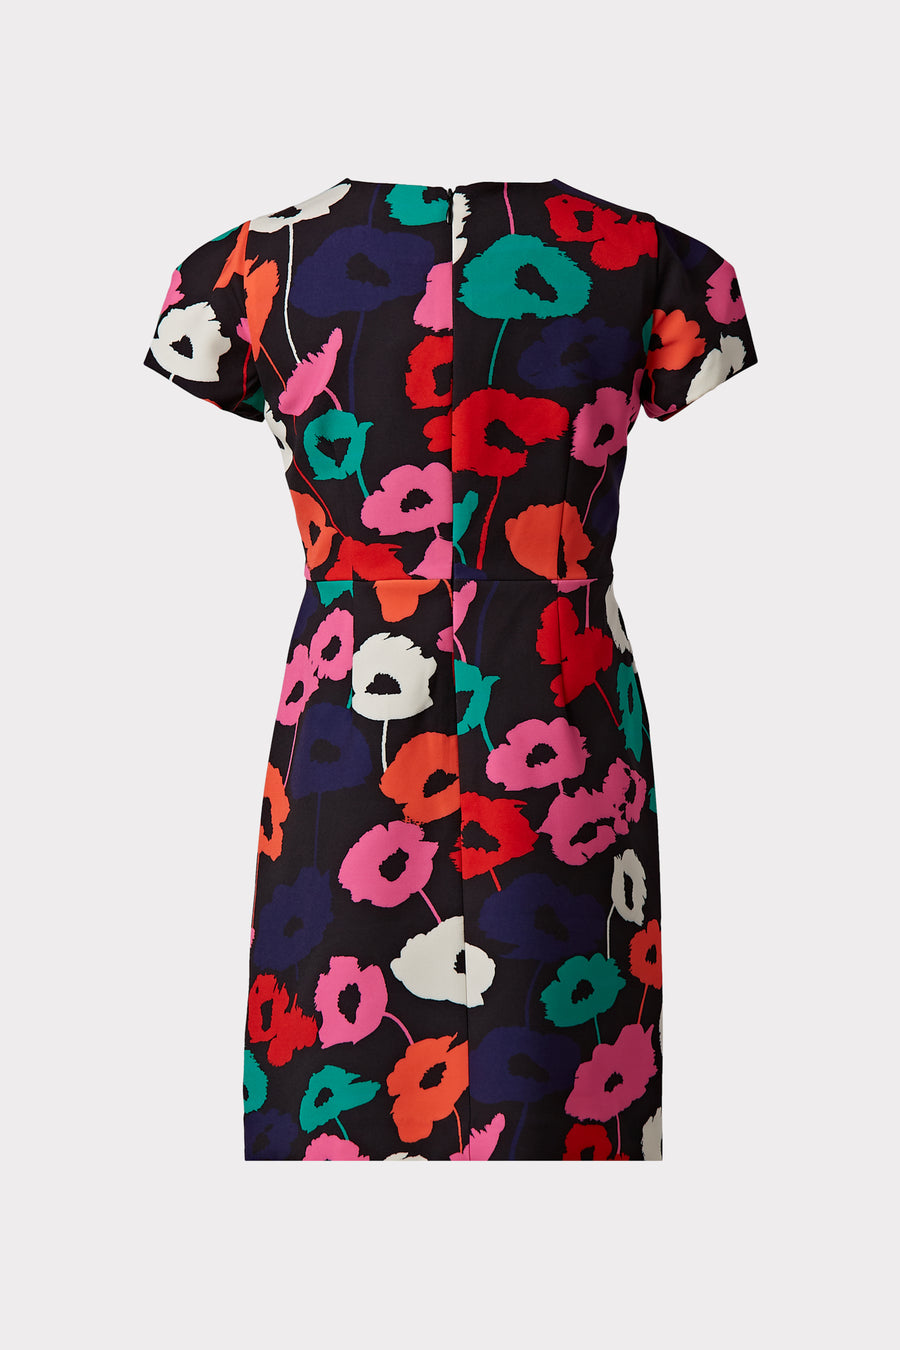 Milly Minis Atalie Multi Poppy Print Cady Dress